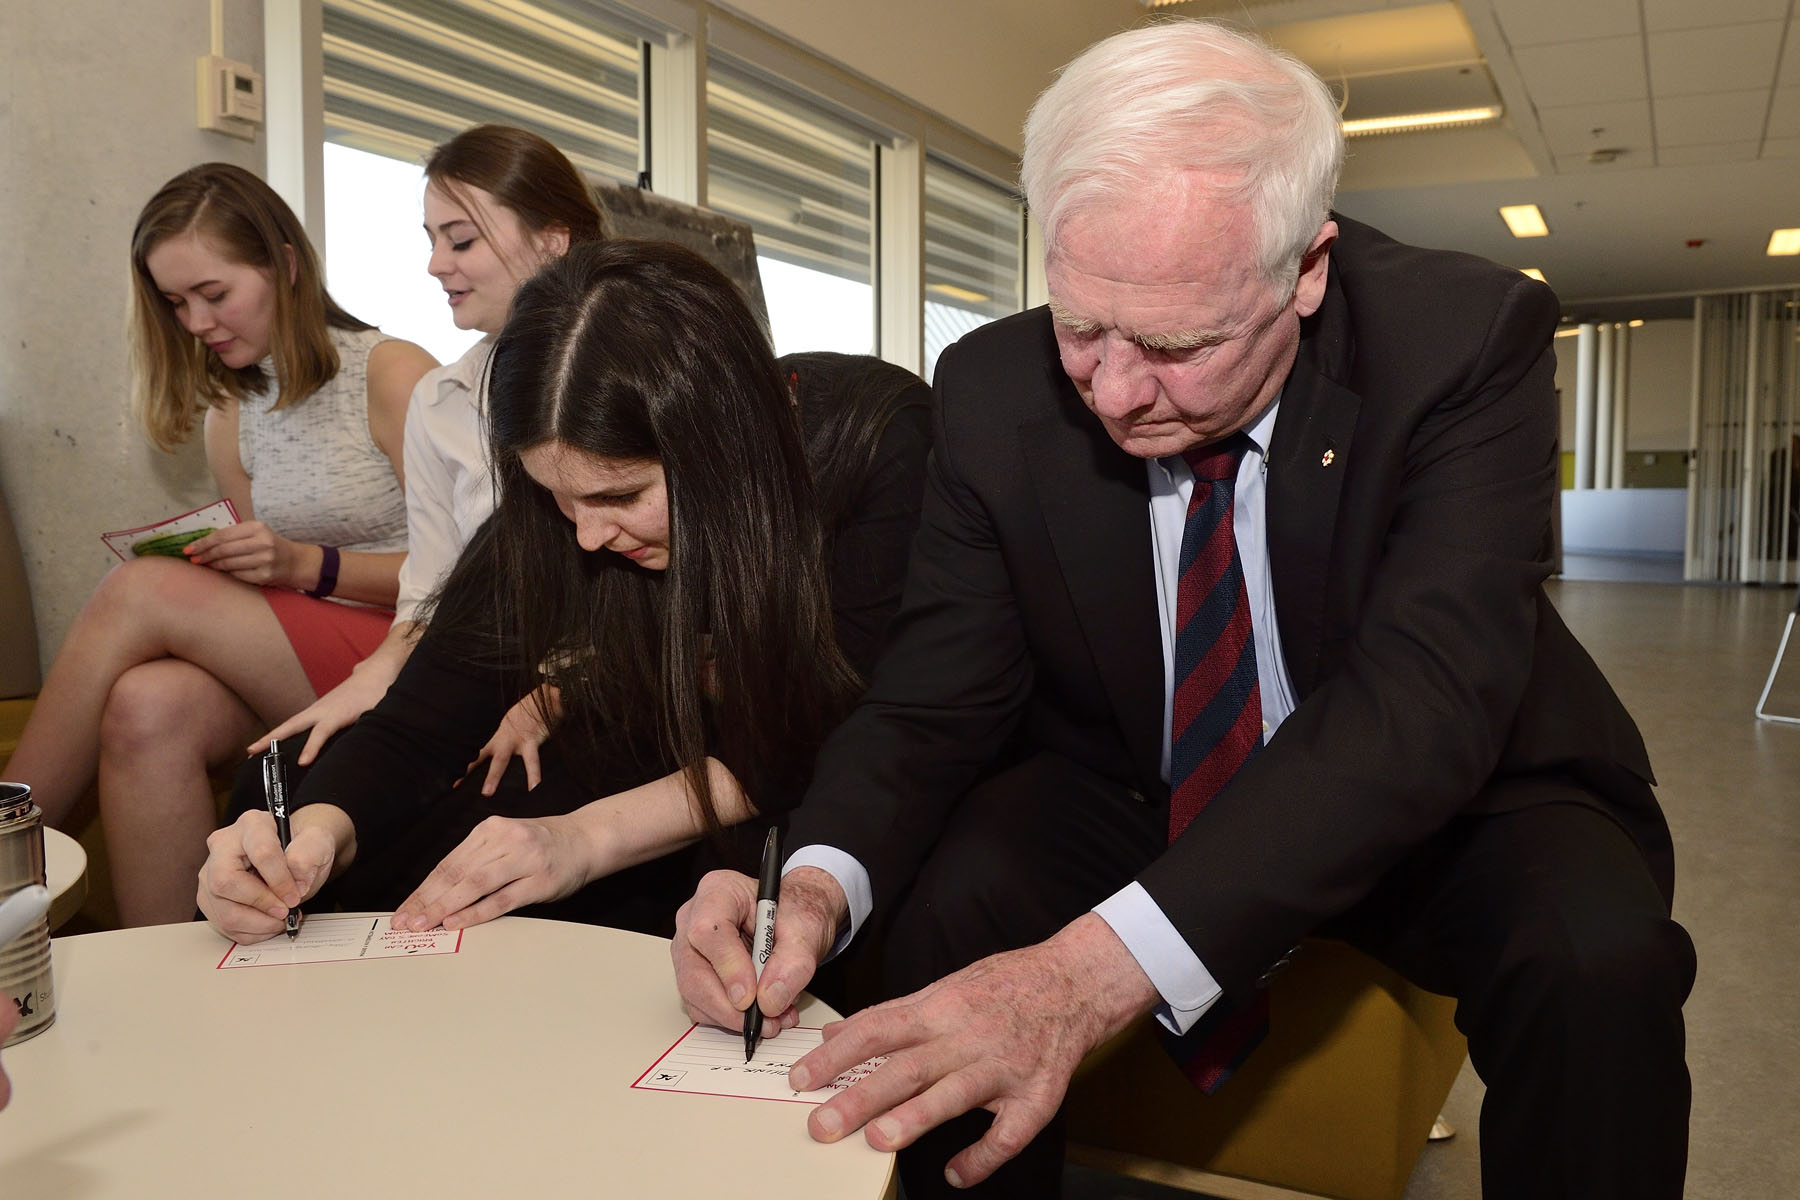 The Governor General participated in a community project, whereby patients at the Children's Hospital of Eastern Ontario (CHEO) receive hand-written messages from volunteers.